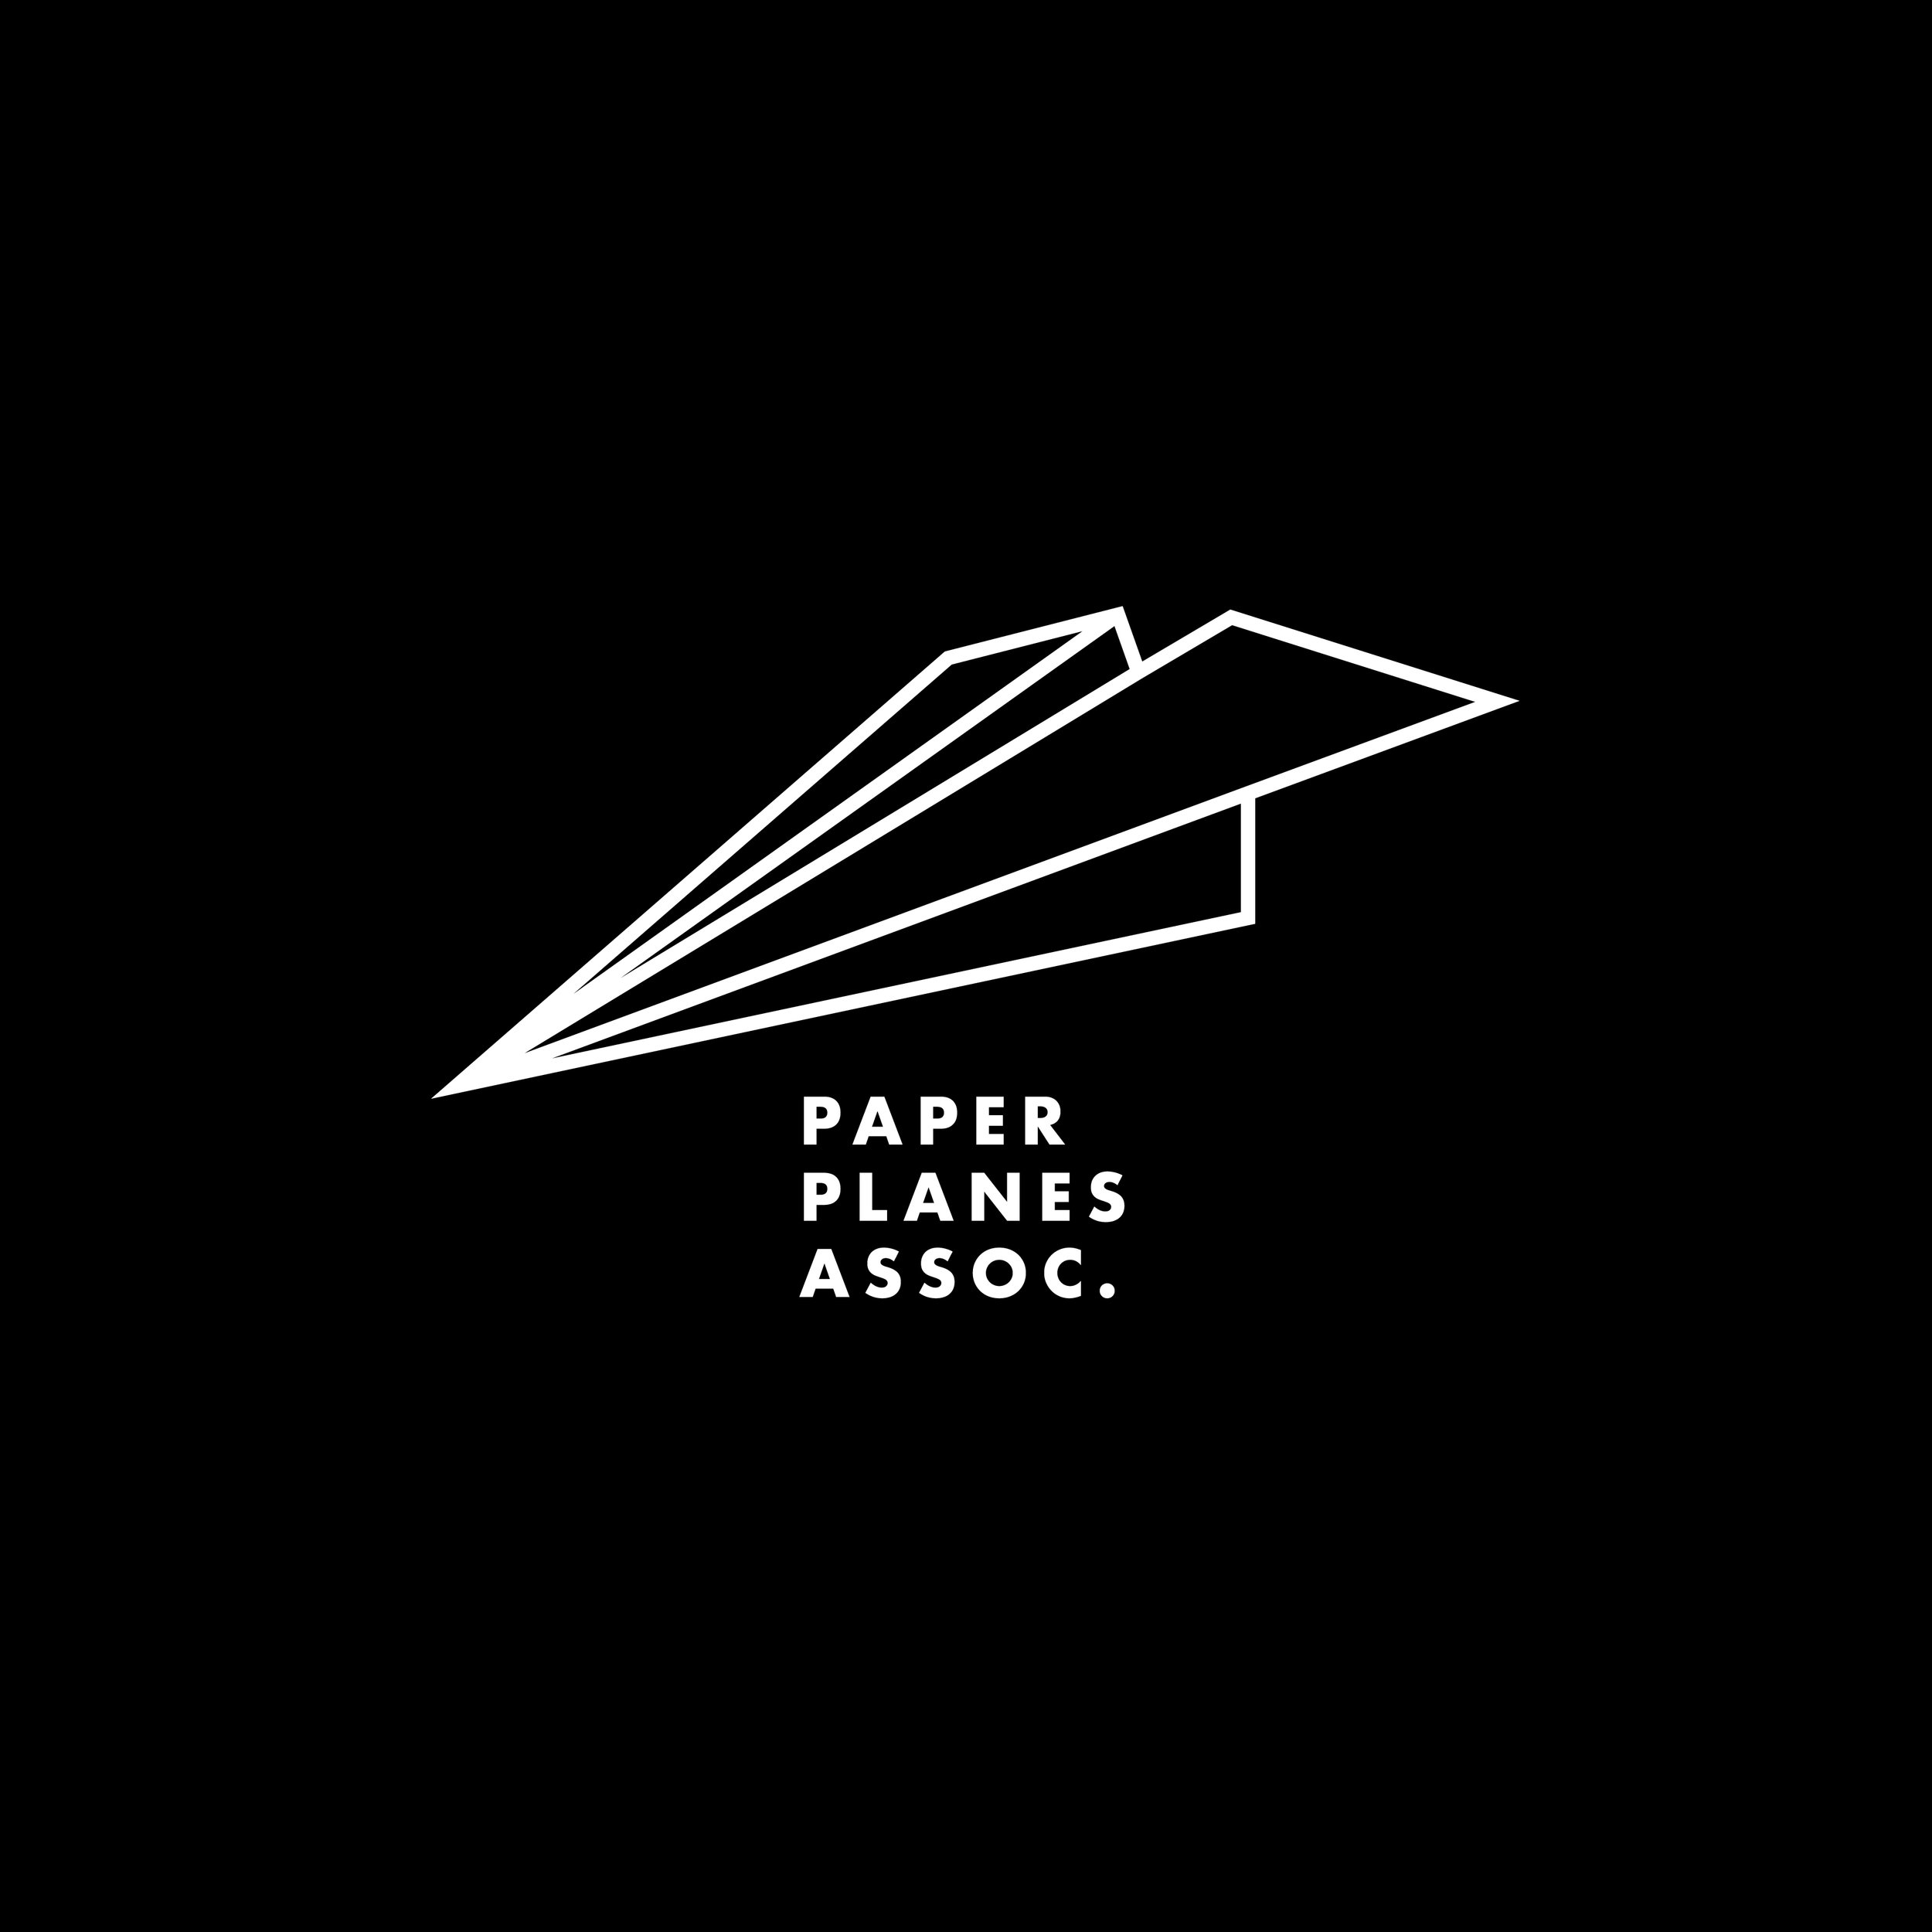 Paper Planes Assoc. - White on Black